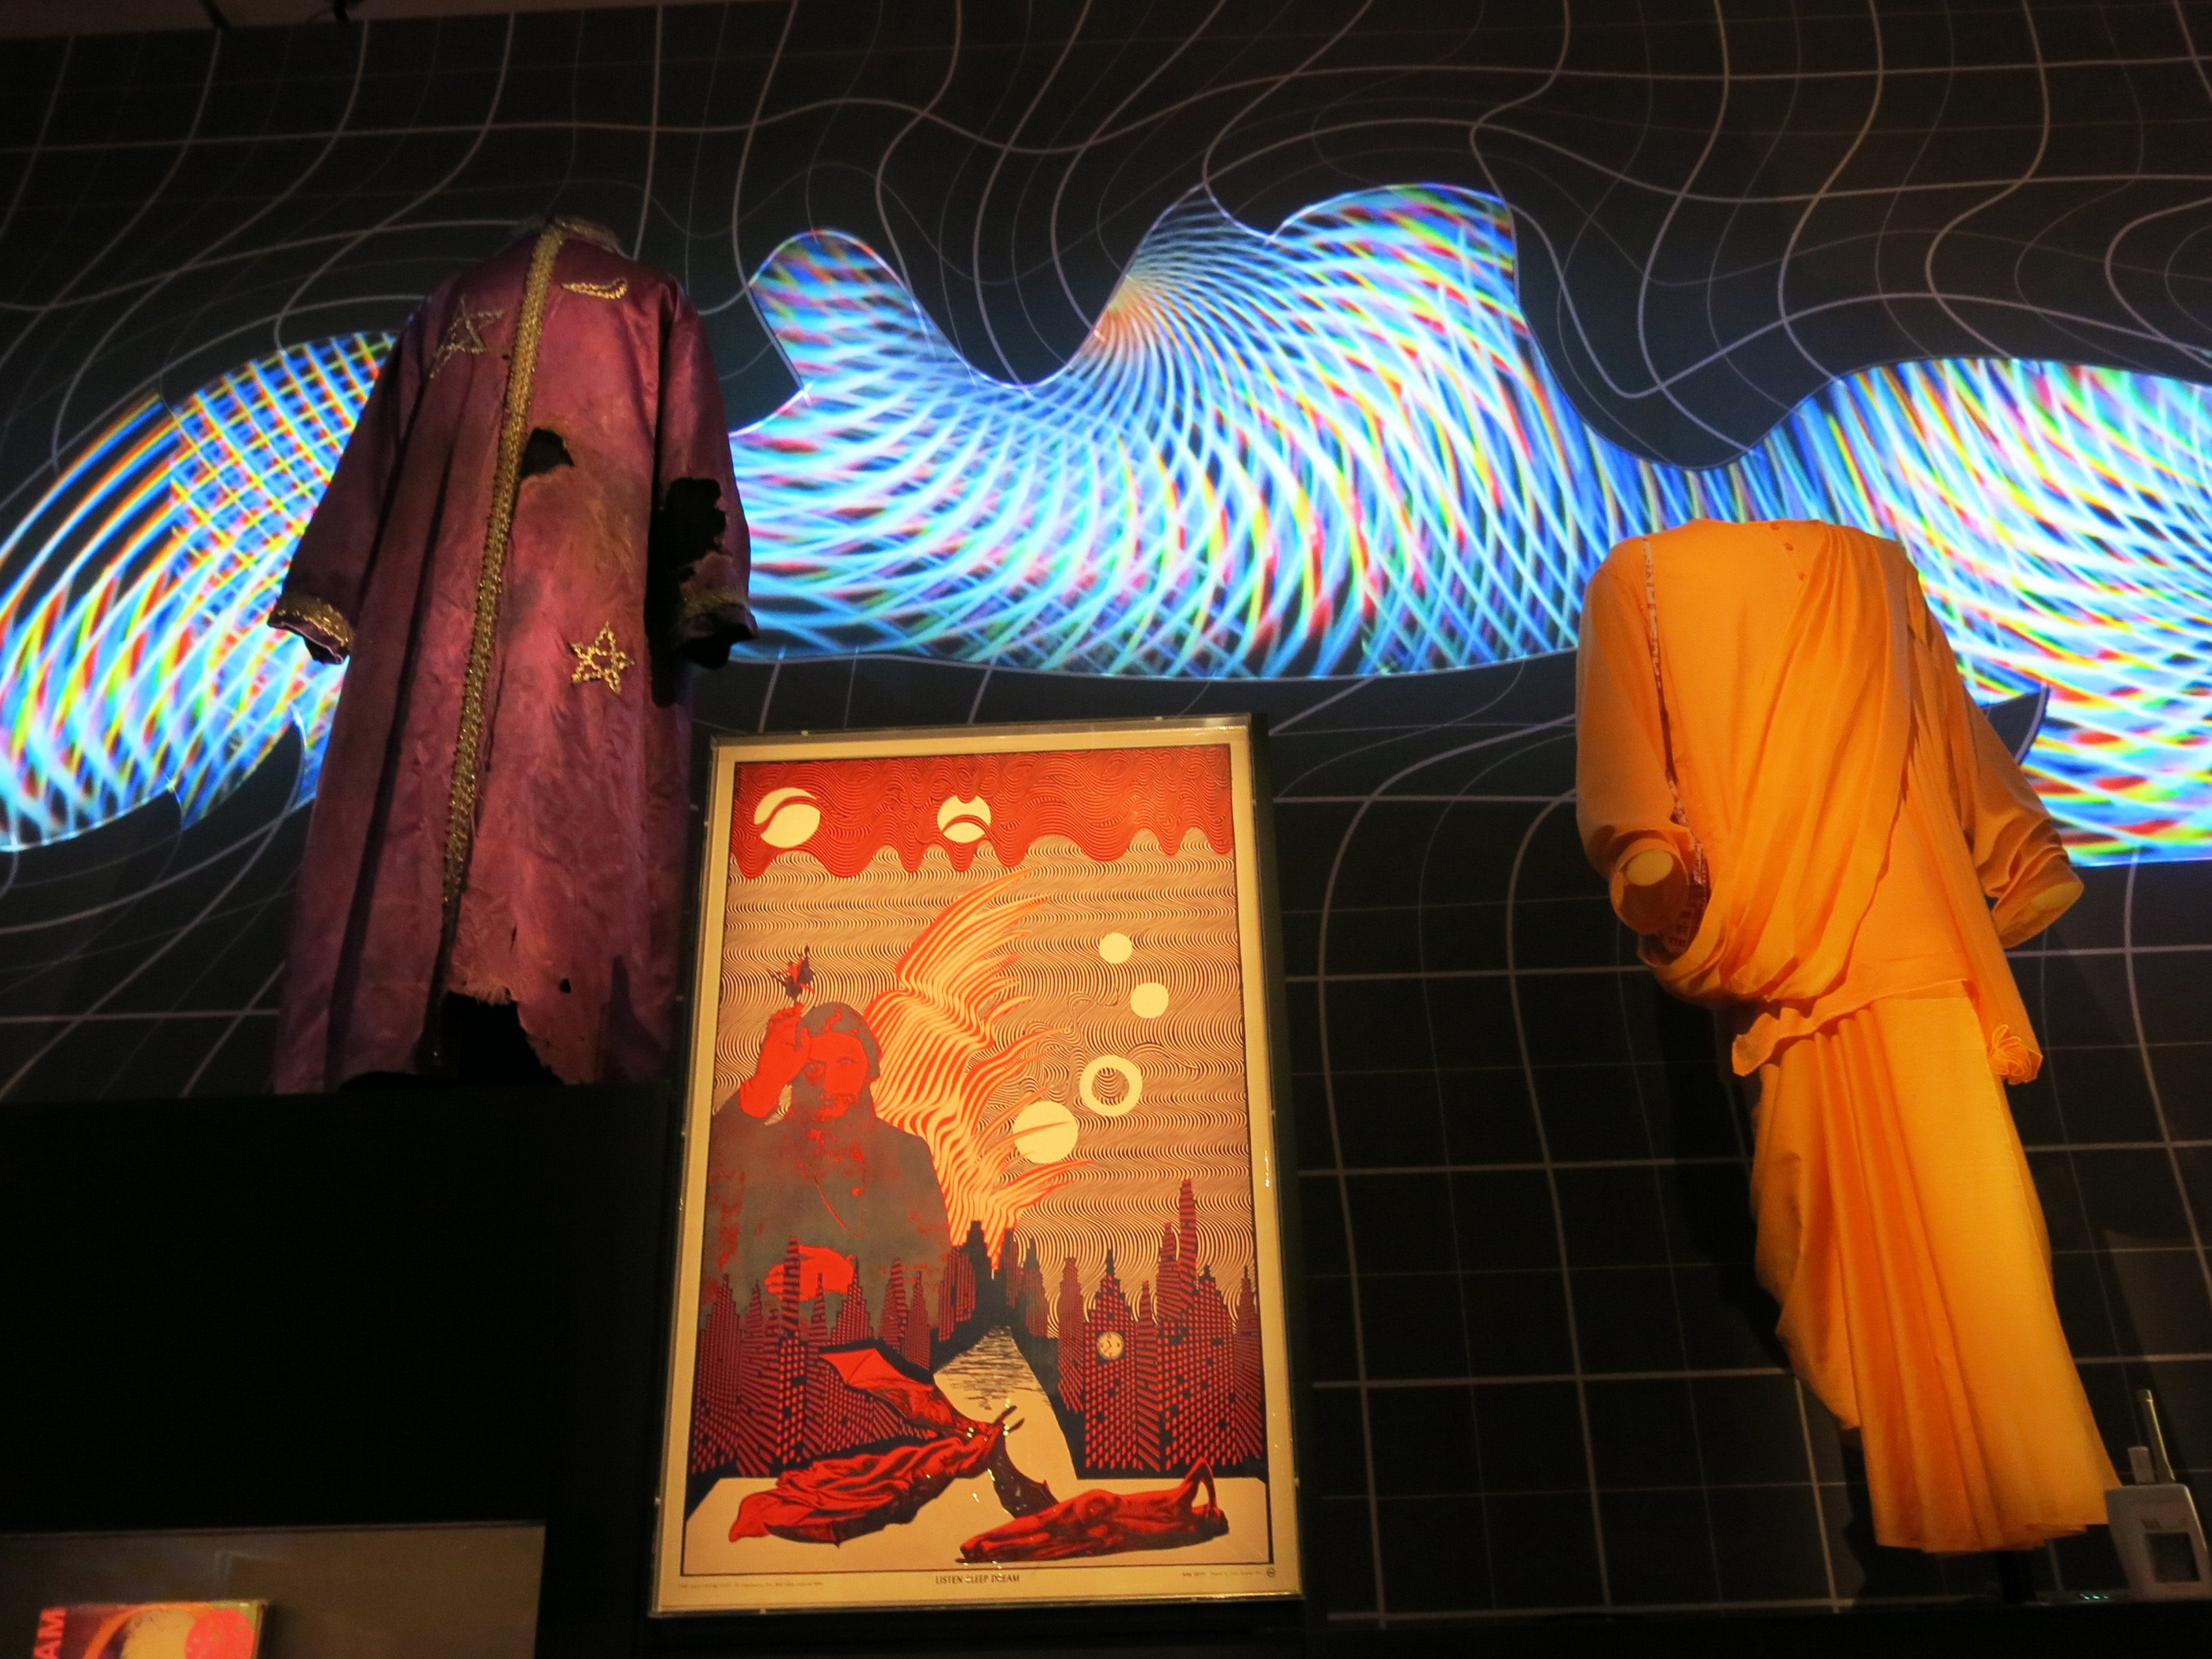 robes-posters-and-psychedelic-patterns